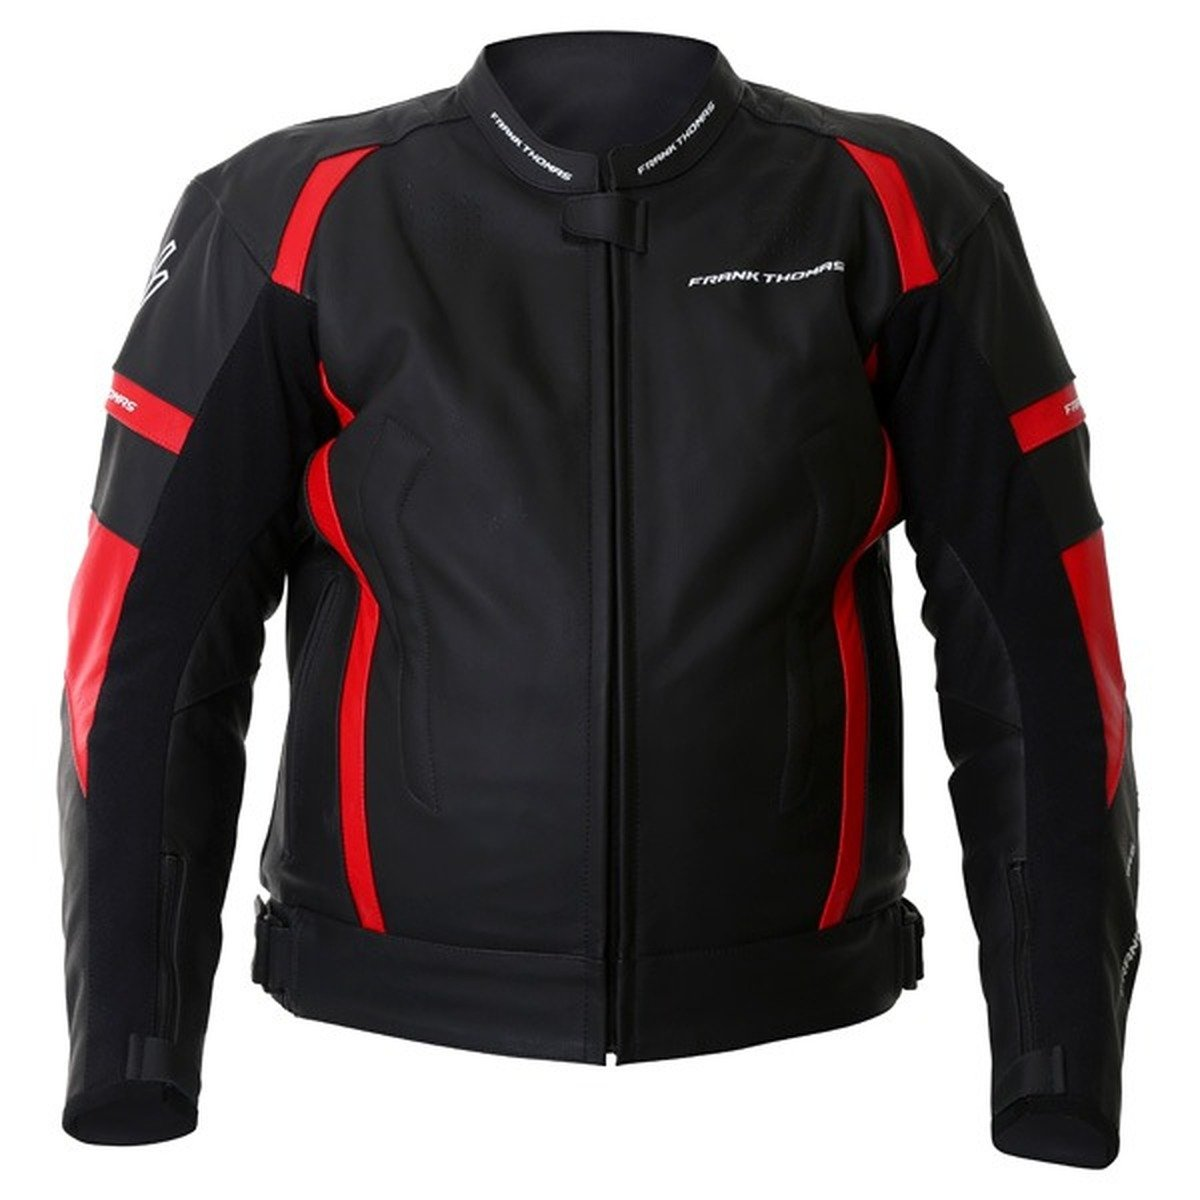 Frank Thomas Dynamic Jacket in Black and Red